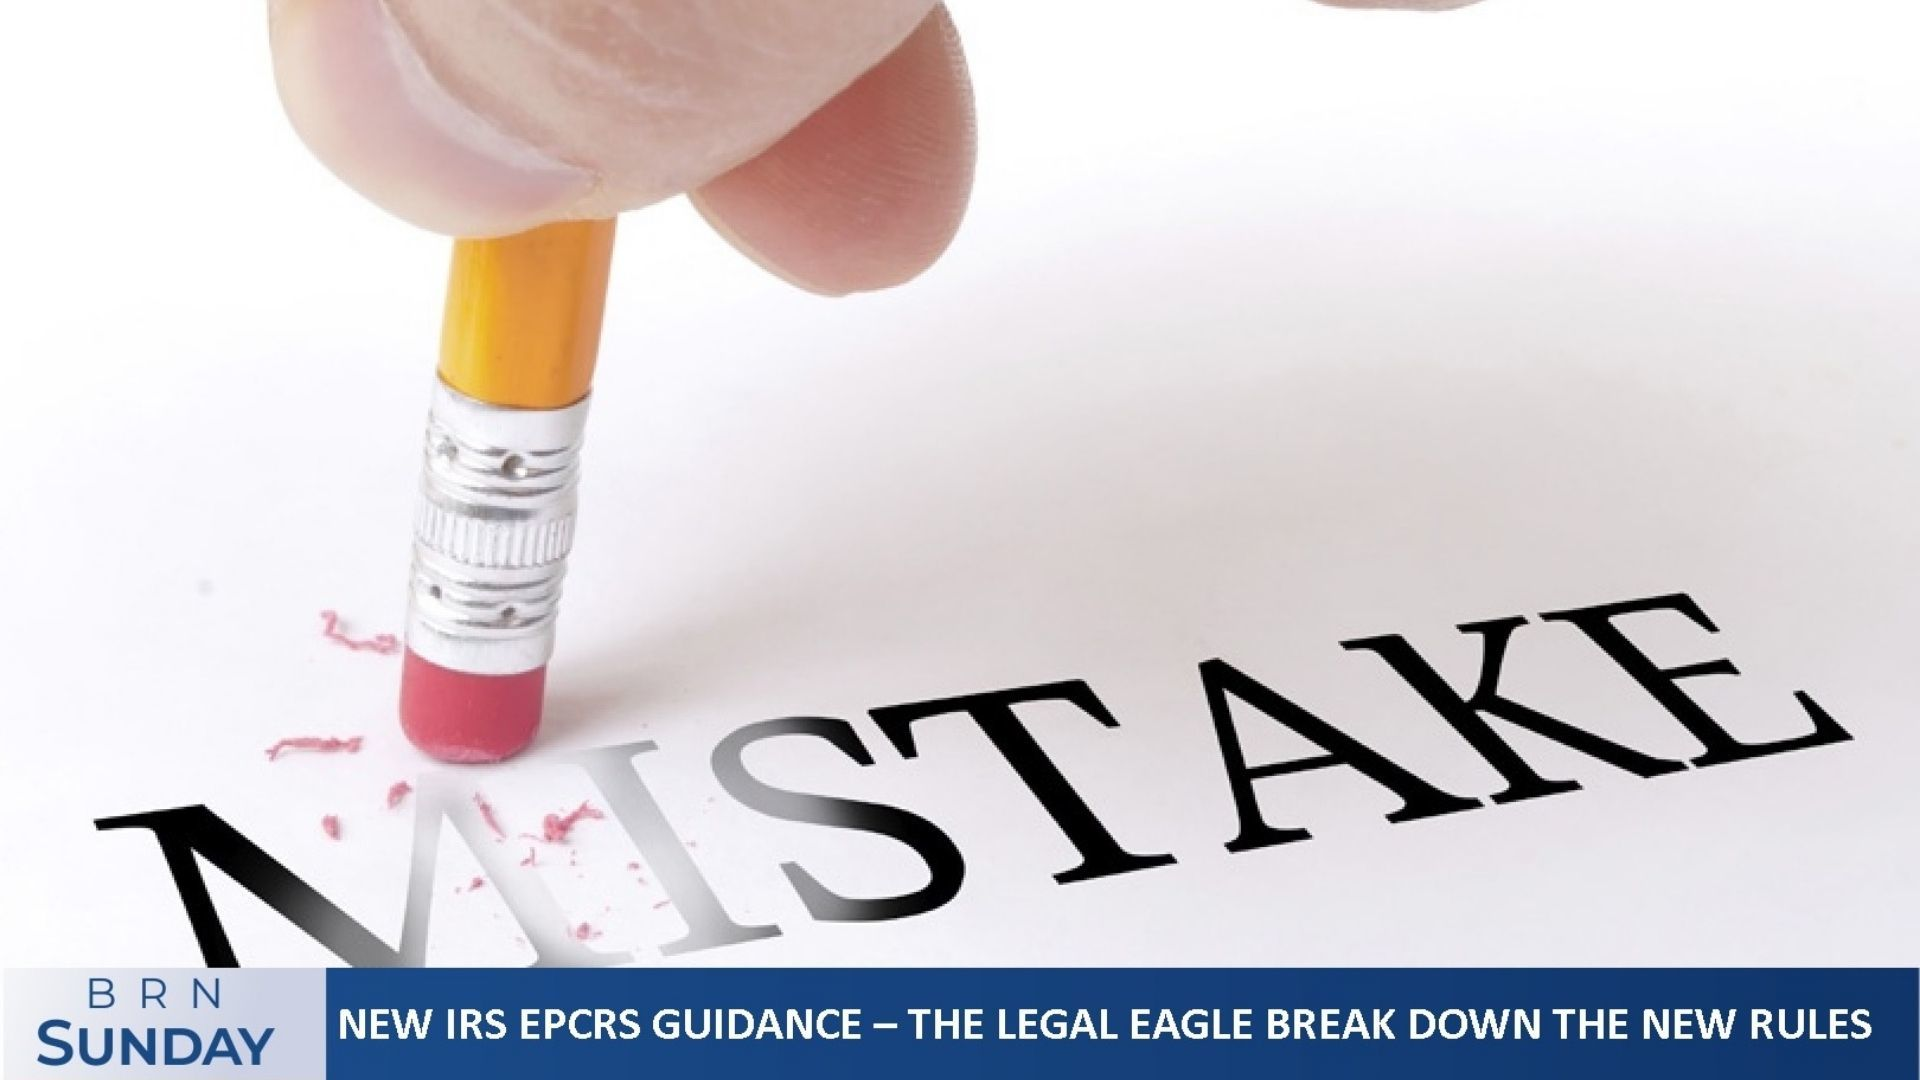 BRN Sunday | New IRS EPCRS guidance makes its debut! – The Legal Eagle break down the new rules